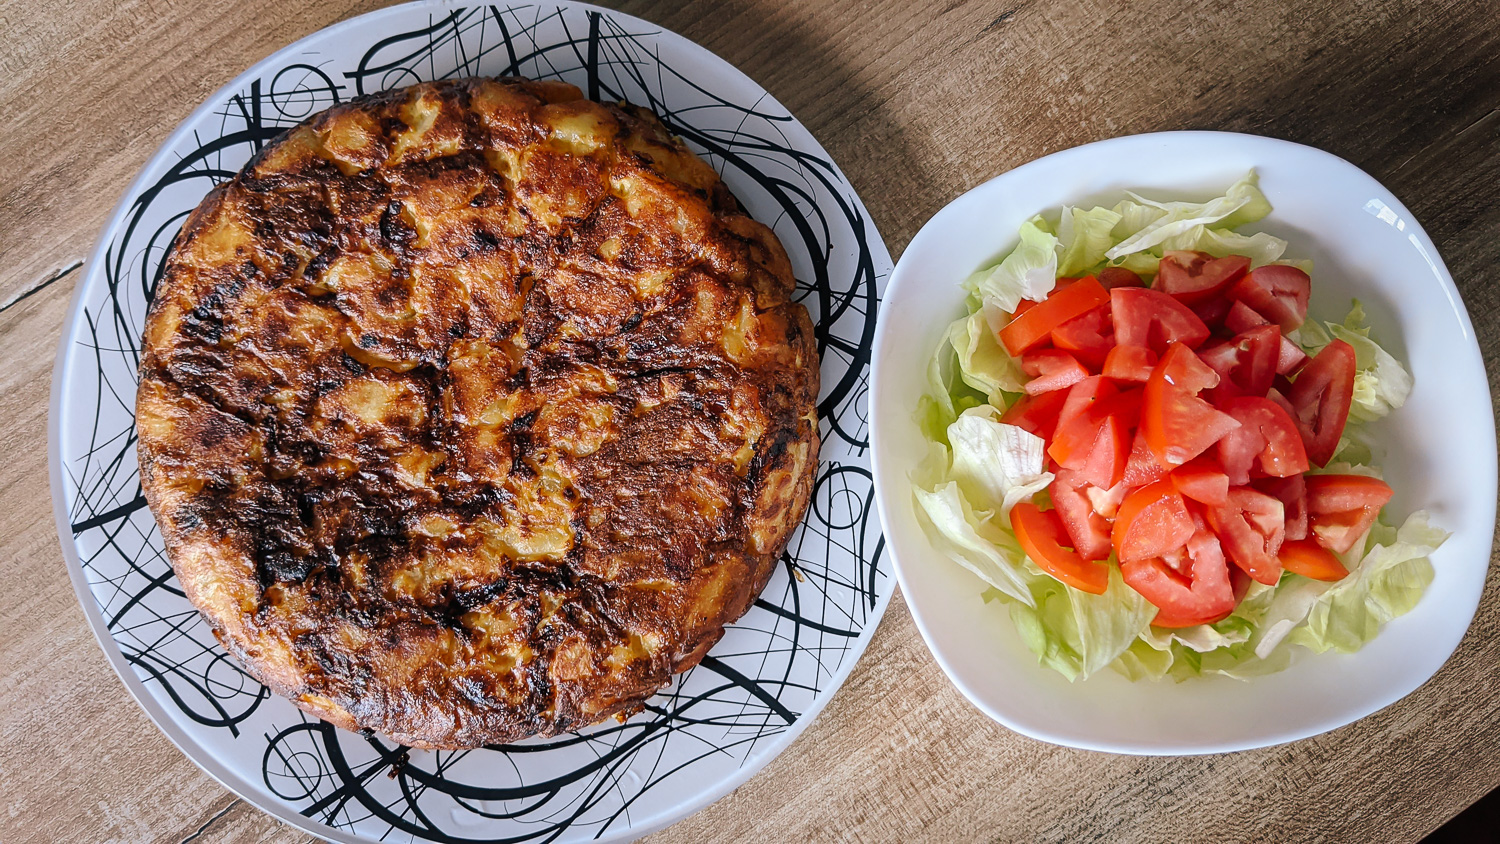 A Spanish tortilla recipe that will knock your socks off!